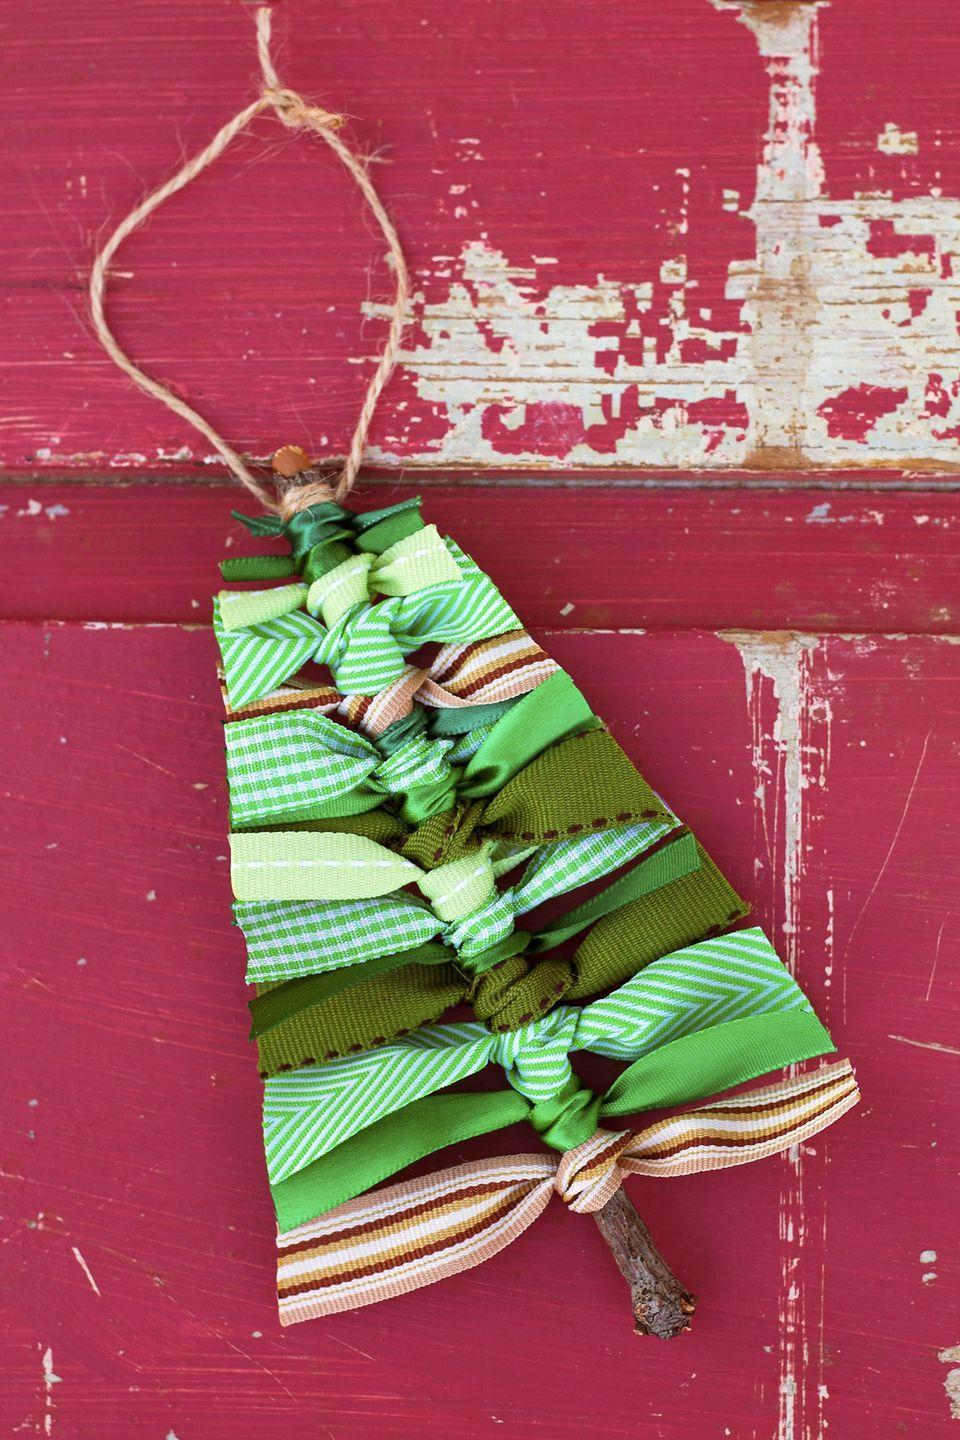 "<p>Never <em>leaf </em><span class=""redactor-invisible-space"">scrap ribbon lying around again.</span></p><p><strong>Get the tutorial at <a href=""https://www.firefliesandmudpies.com/scrap-ribbon-tree-ornaments/"" rel=""nofollow noopener"" target=""_blank"" data-ylk=""slk:Fireflies and Mud Pies"" class=""link rapid-noclick-resp"">Fireflies and Mud Pies</a>.</strong></p>"